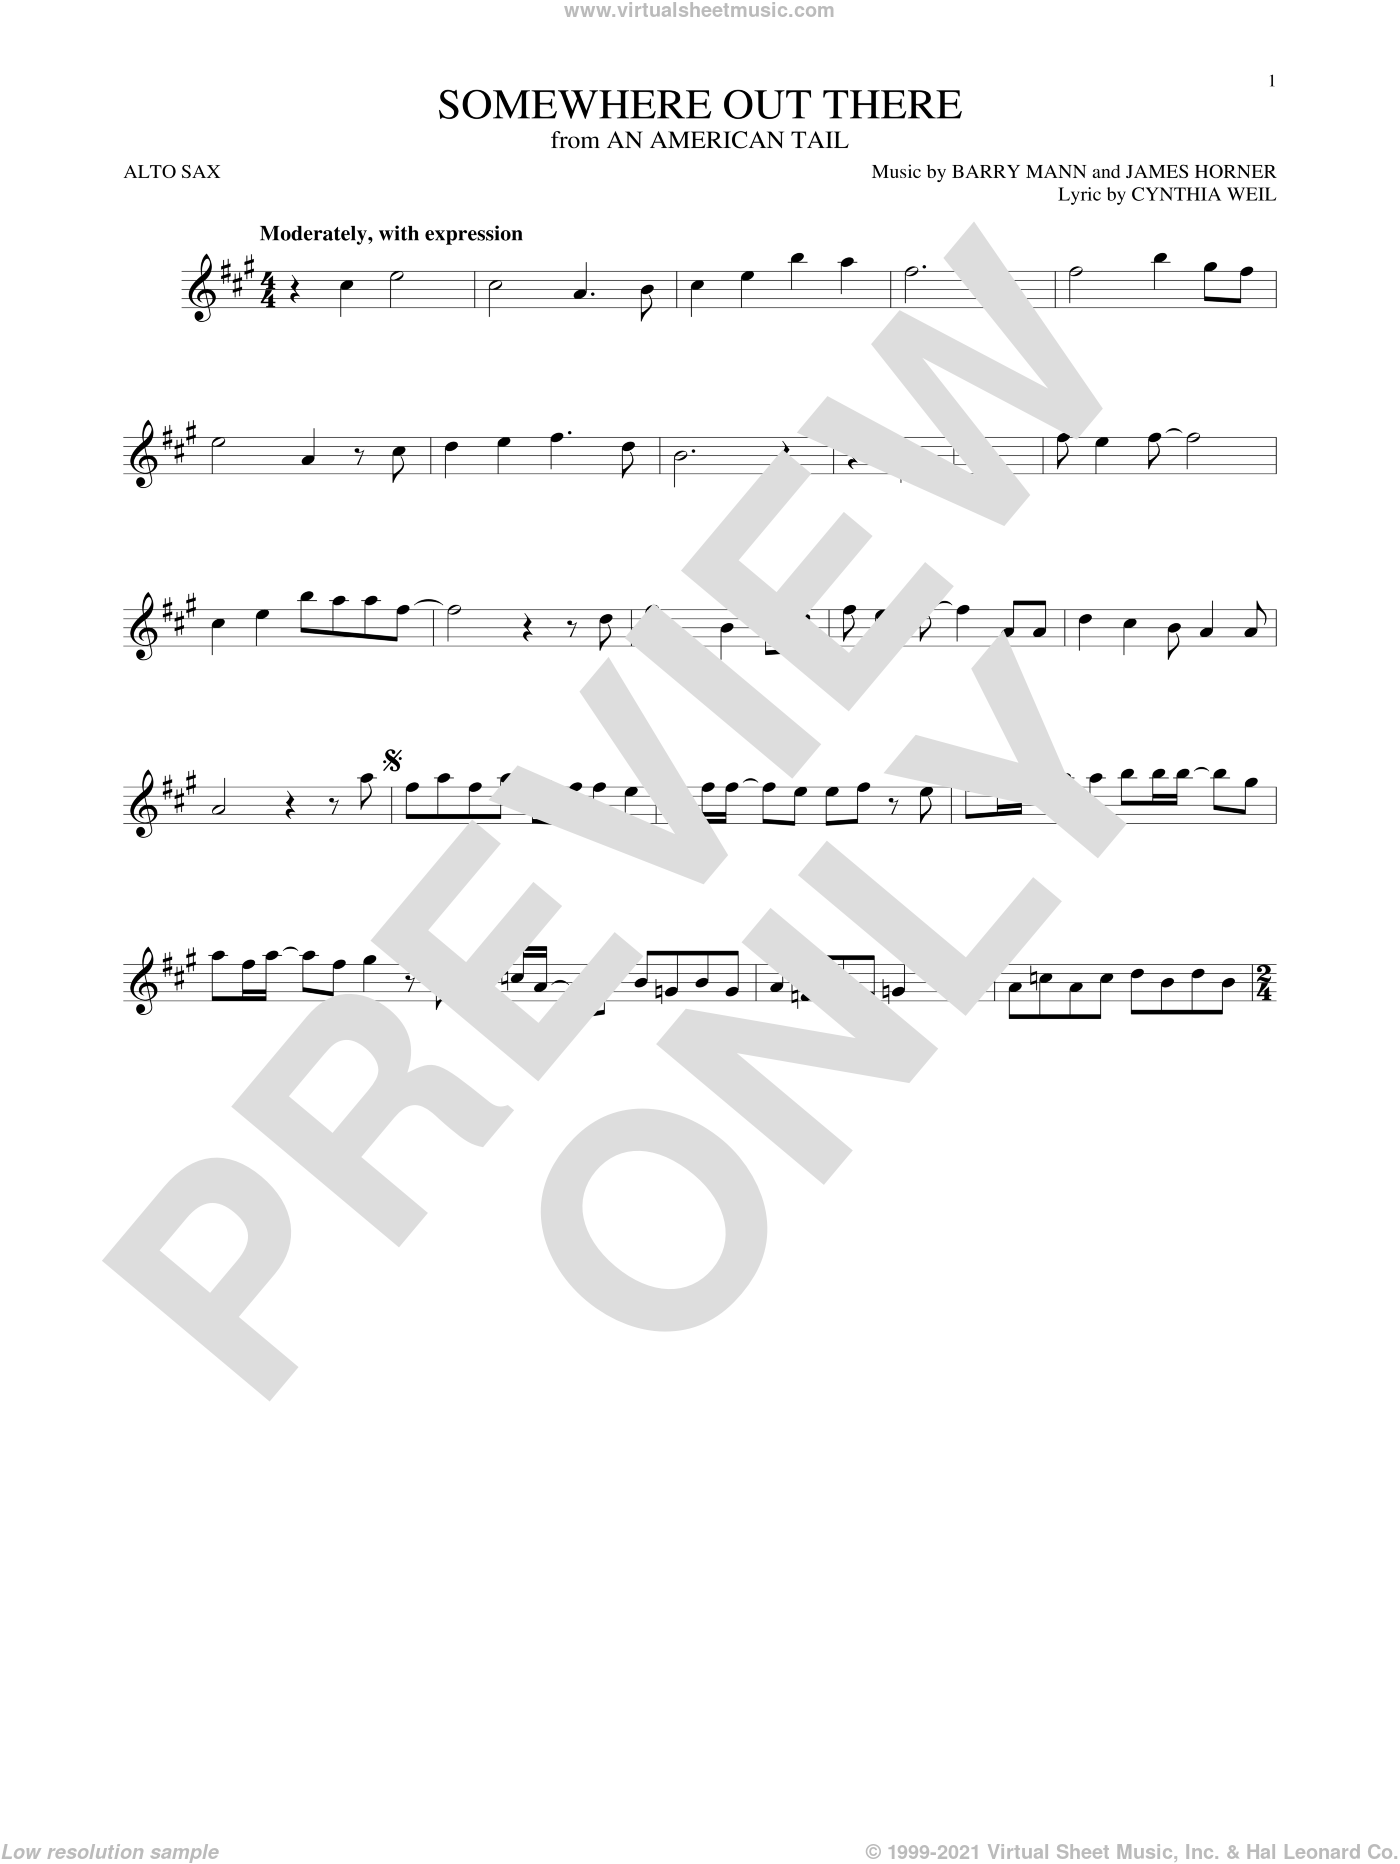 Somewhere Out There sheet music for alto saxophone solo by Linda Ronstadt & James Ingram, Barry Mann, Cynthia Weil and James Horner, intermediate skill level